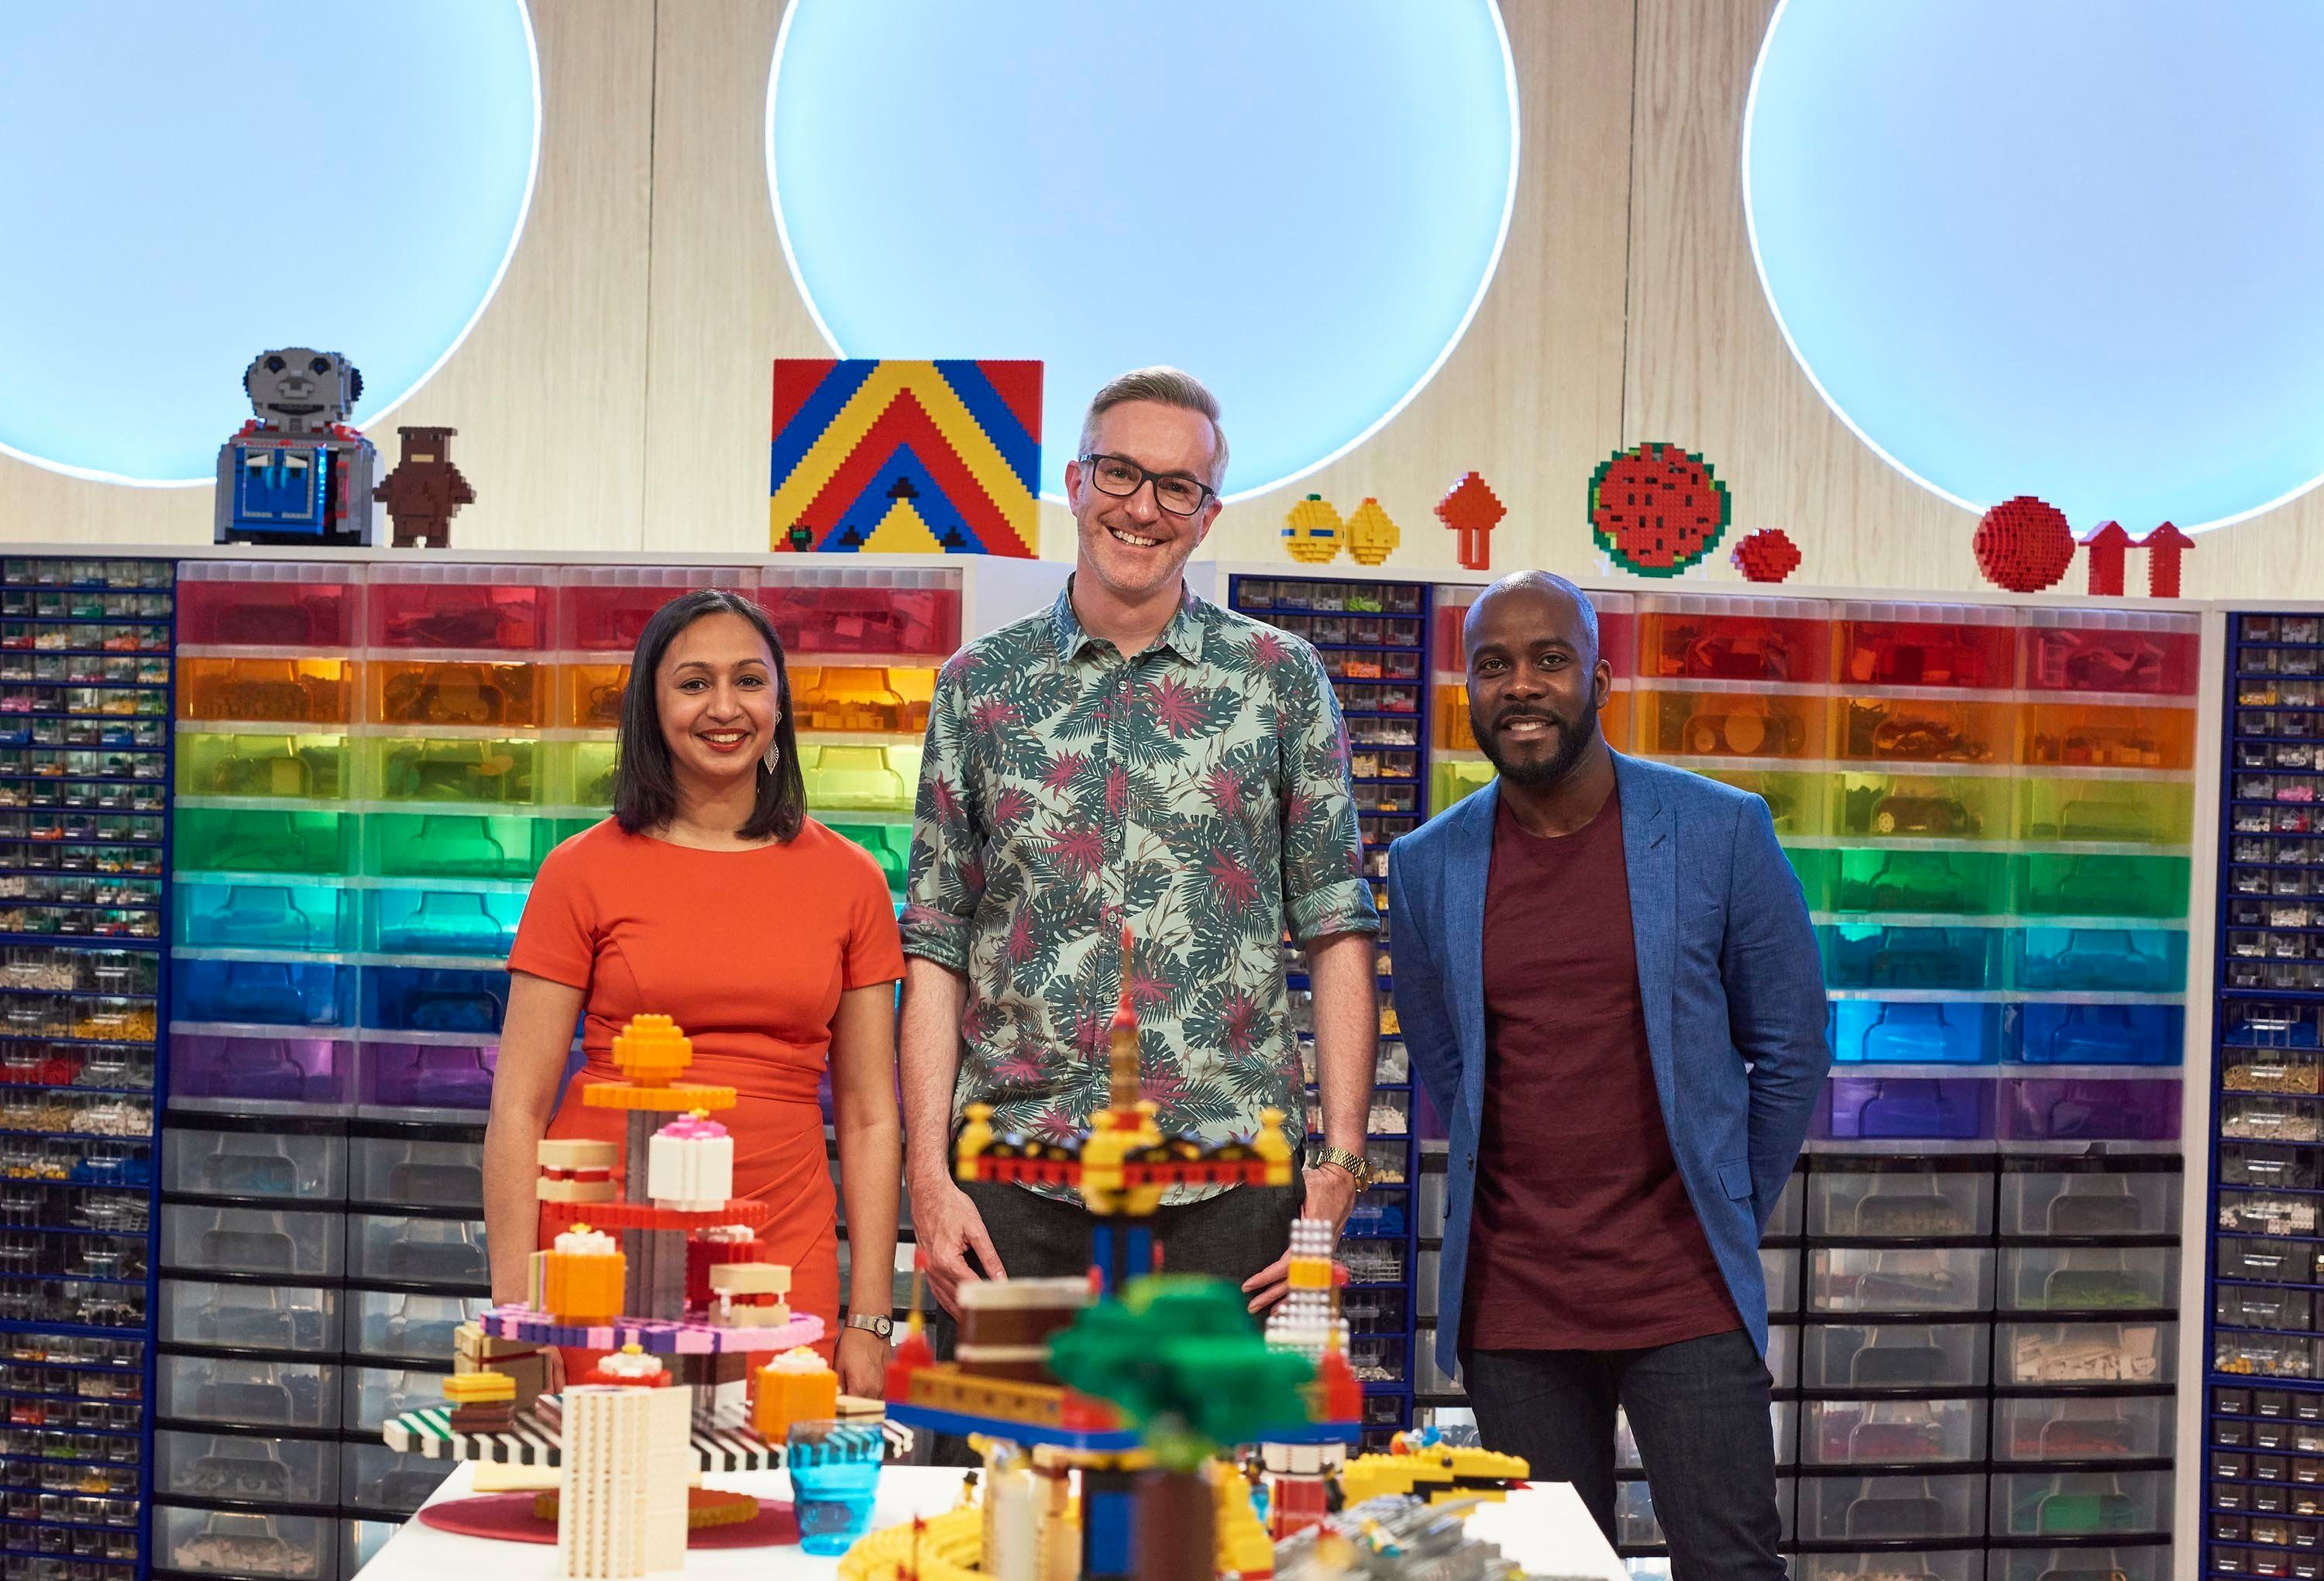 Melvin was the host of Channel 4's 'Lego